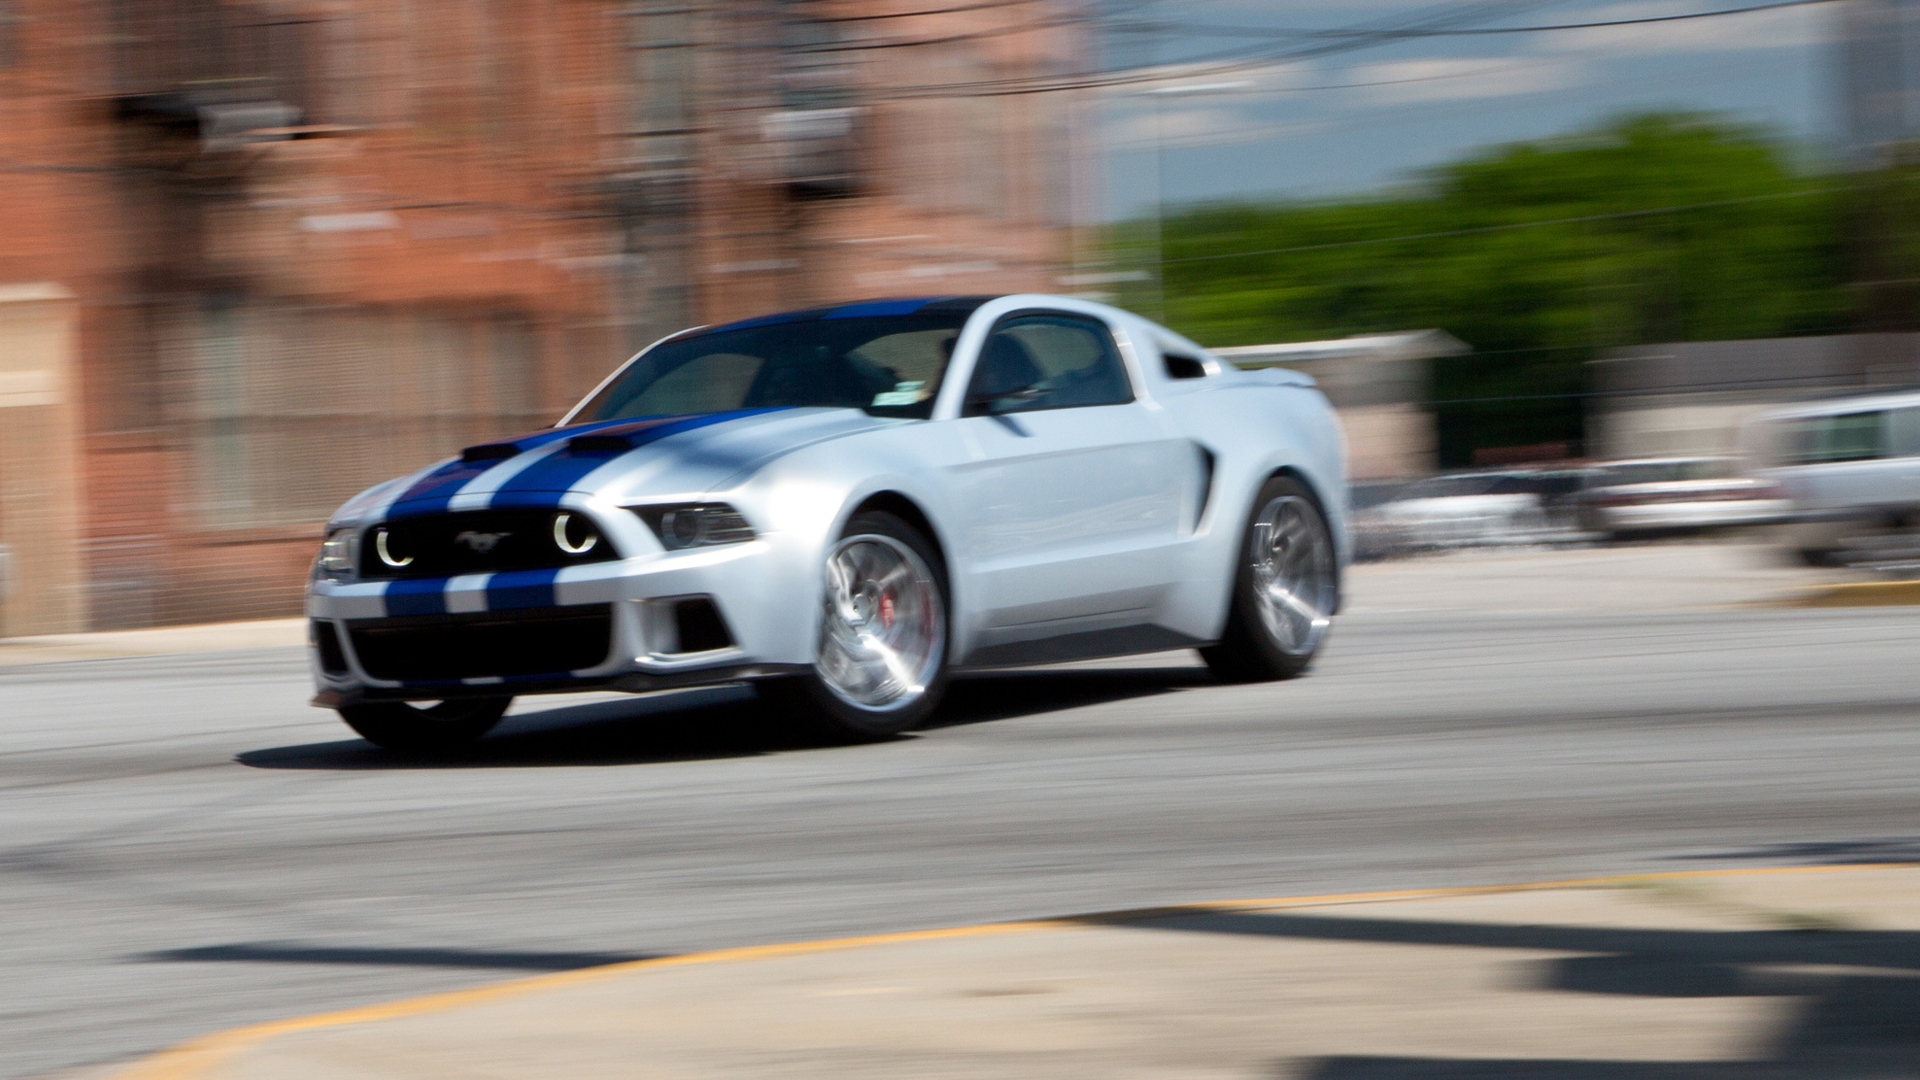 need for speed shelby mustang hd 1920x1080jpg 1920x1080